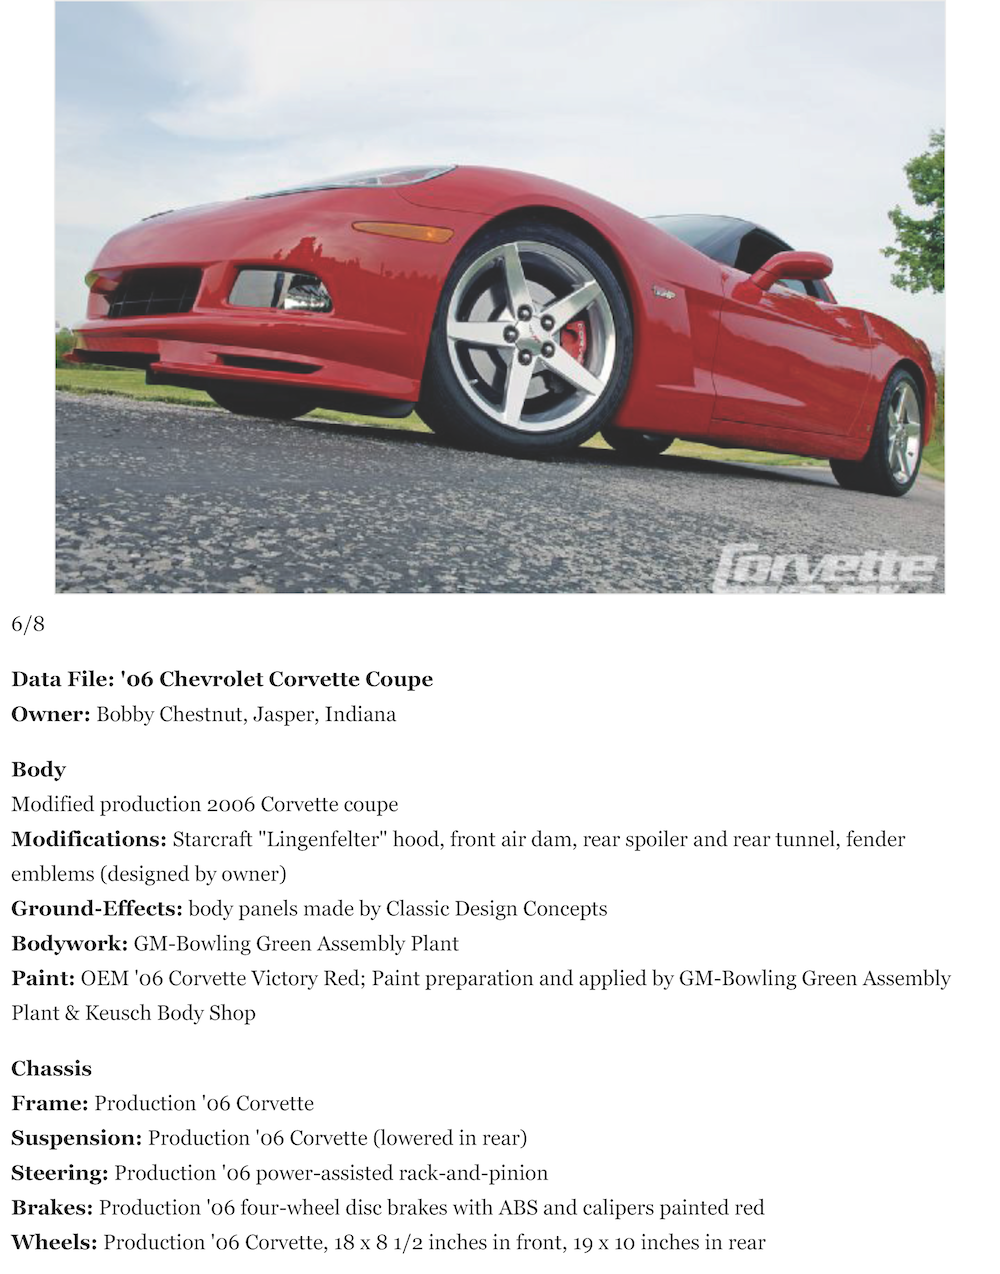 2006 Chevrolet Corvette - Subtly Customized LS2-Powered C6 Coupe - Corvette Fever Magazine - View Al_Page_6